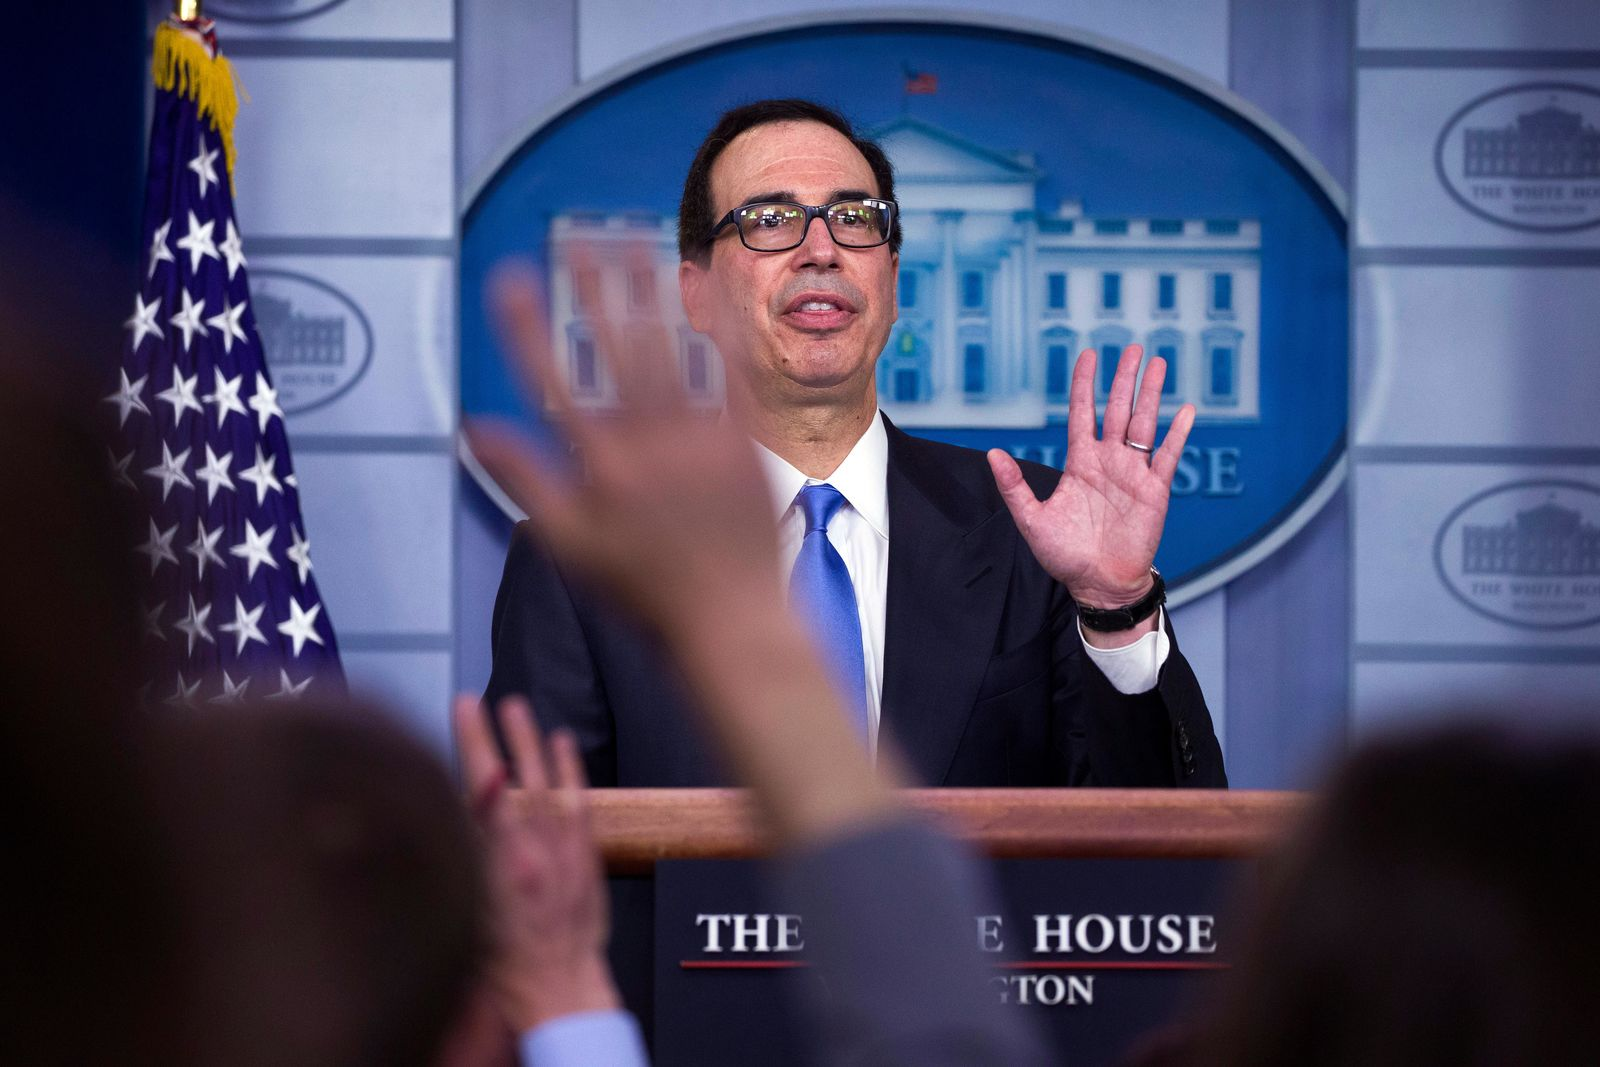 Treasury Secretary Steve Mnuchin waves as he departs after speaking to reporters about the new Iran sanctions in the Briefing Room of the White House, Monday, June 24, 2019, in Washington. (AP Photo/Alex Brandon)